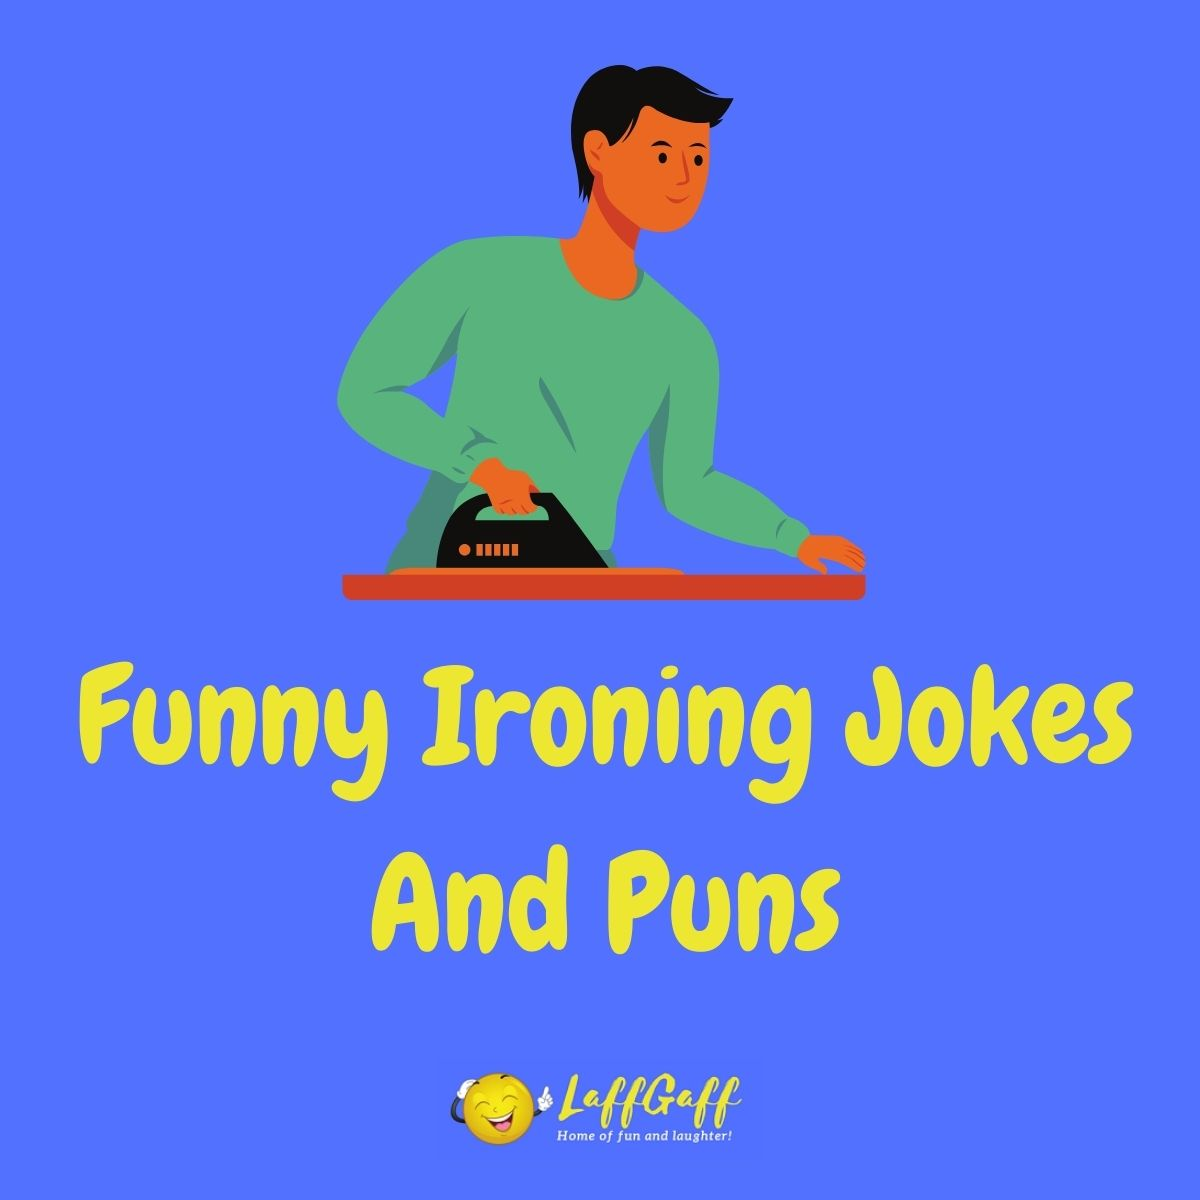 Featured image for a page of funny ironing jokes and puns.